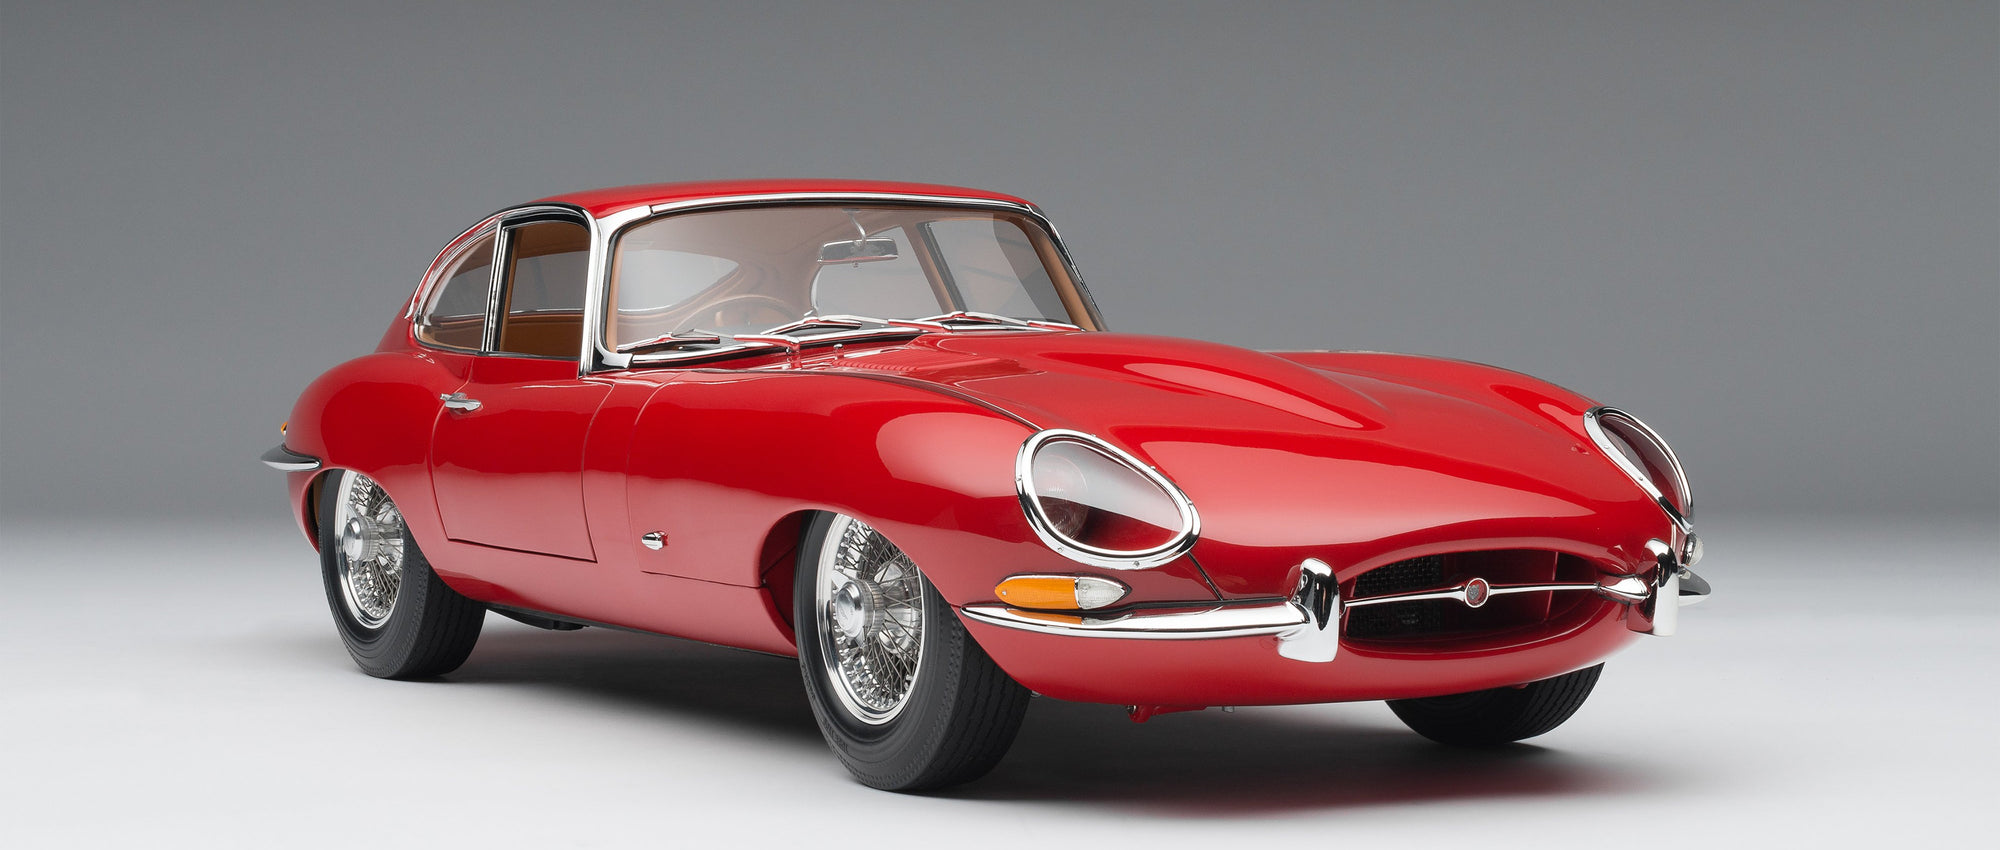 Jaguar E-type - 1961 Series 1 - 3.8 Coupé